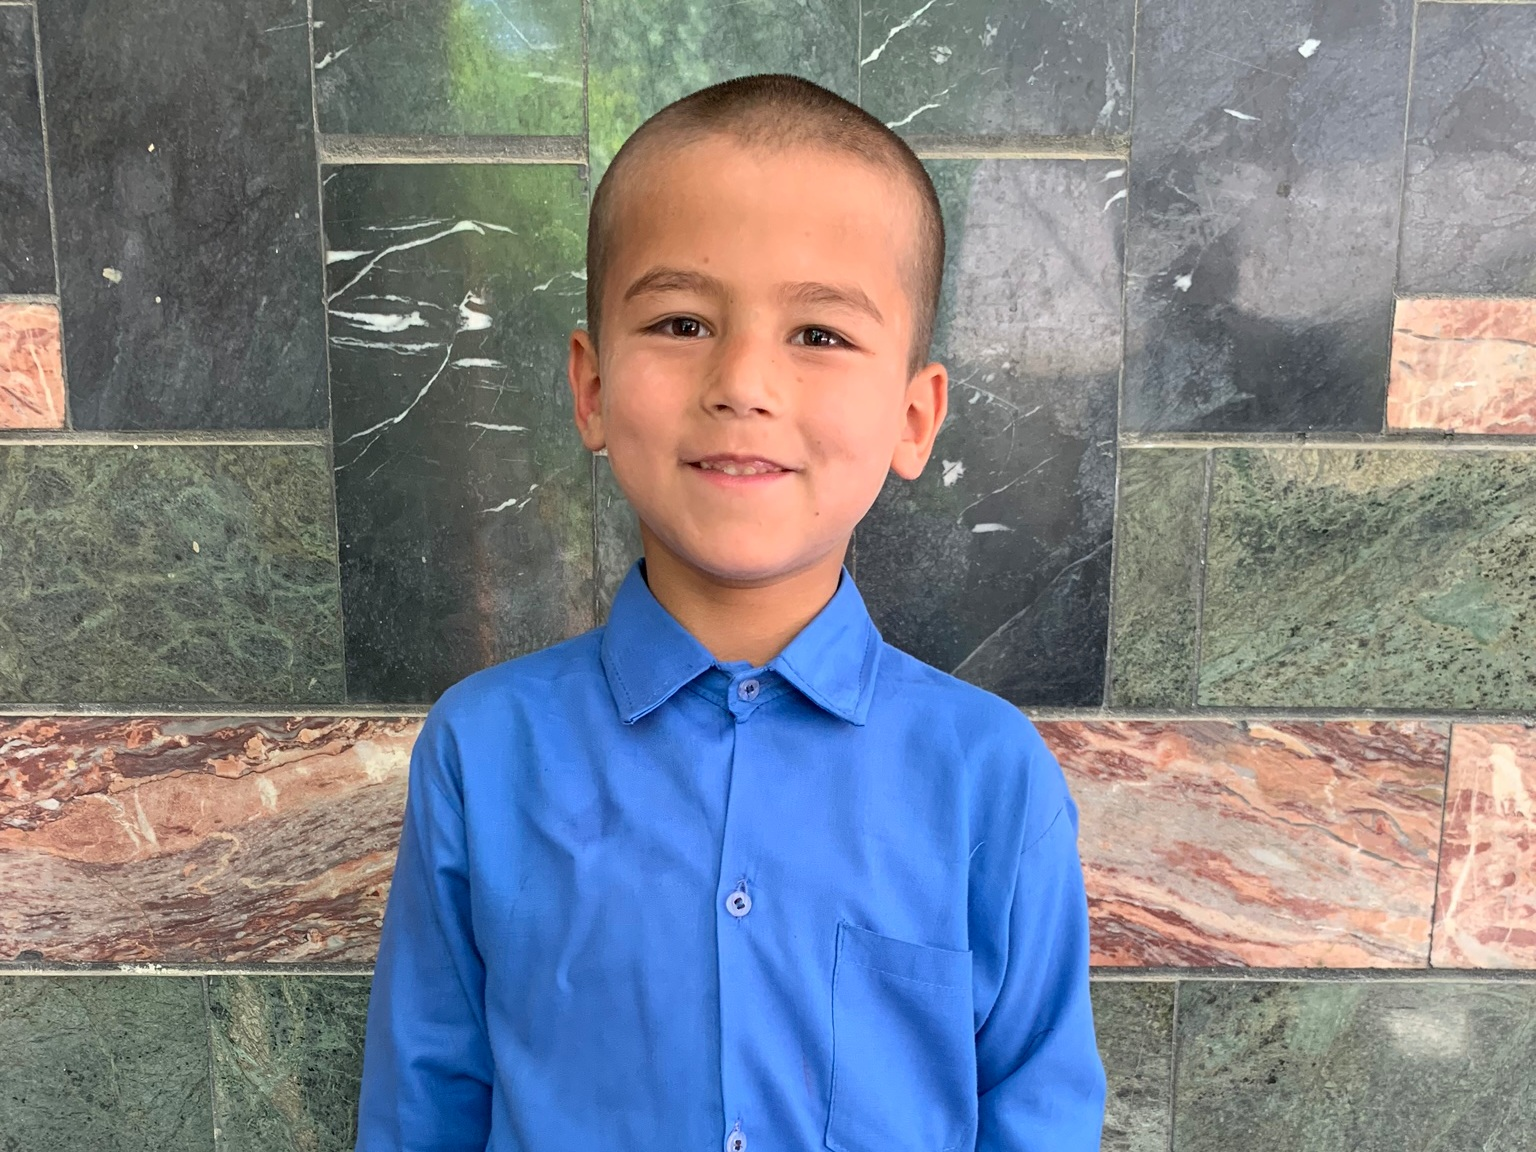 Qhgatebia, Age 7 - Qhgatebia has 8 siblings. His mother is currently unemployed. His father is a driver.BE QHGATEBIA'S PARTNER >